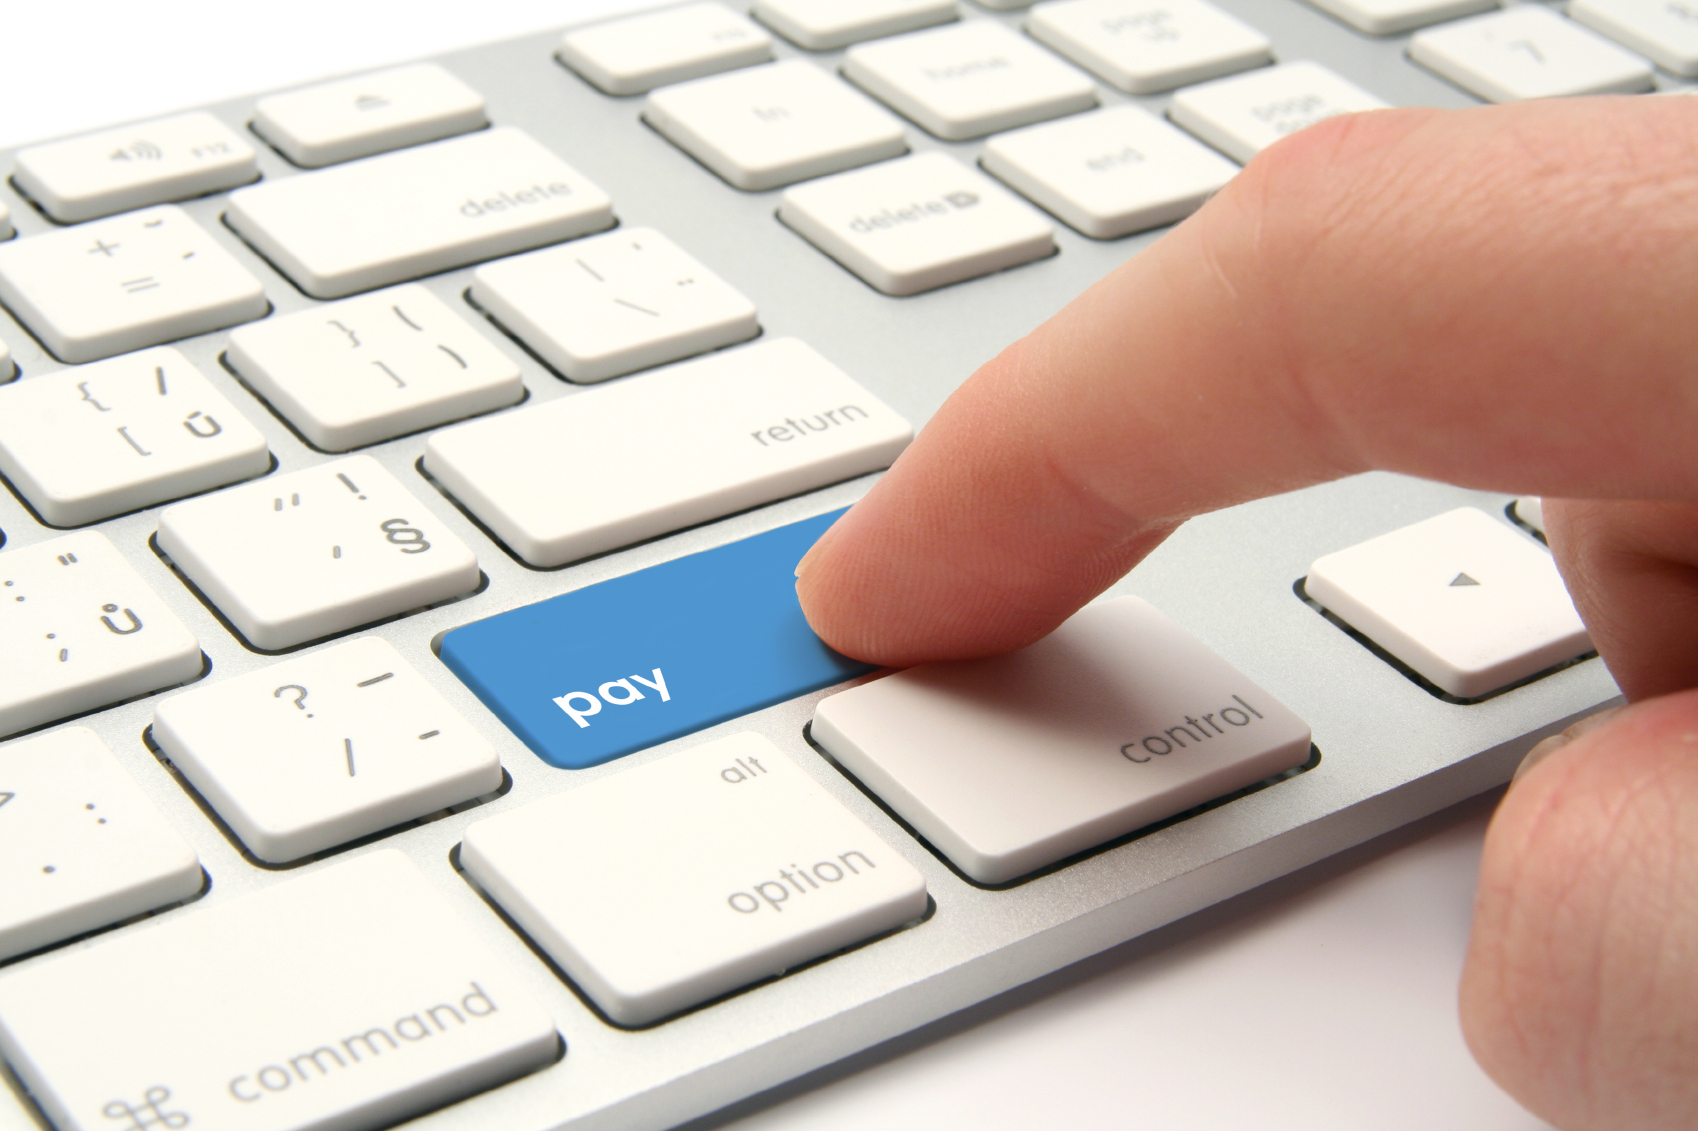 33291_33291_Pay-button-on-keyboard.jpg